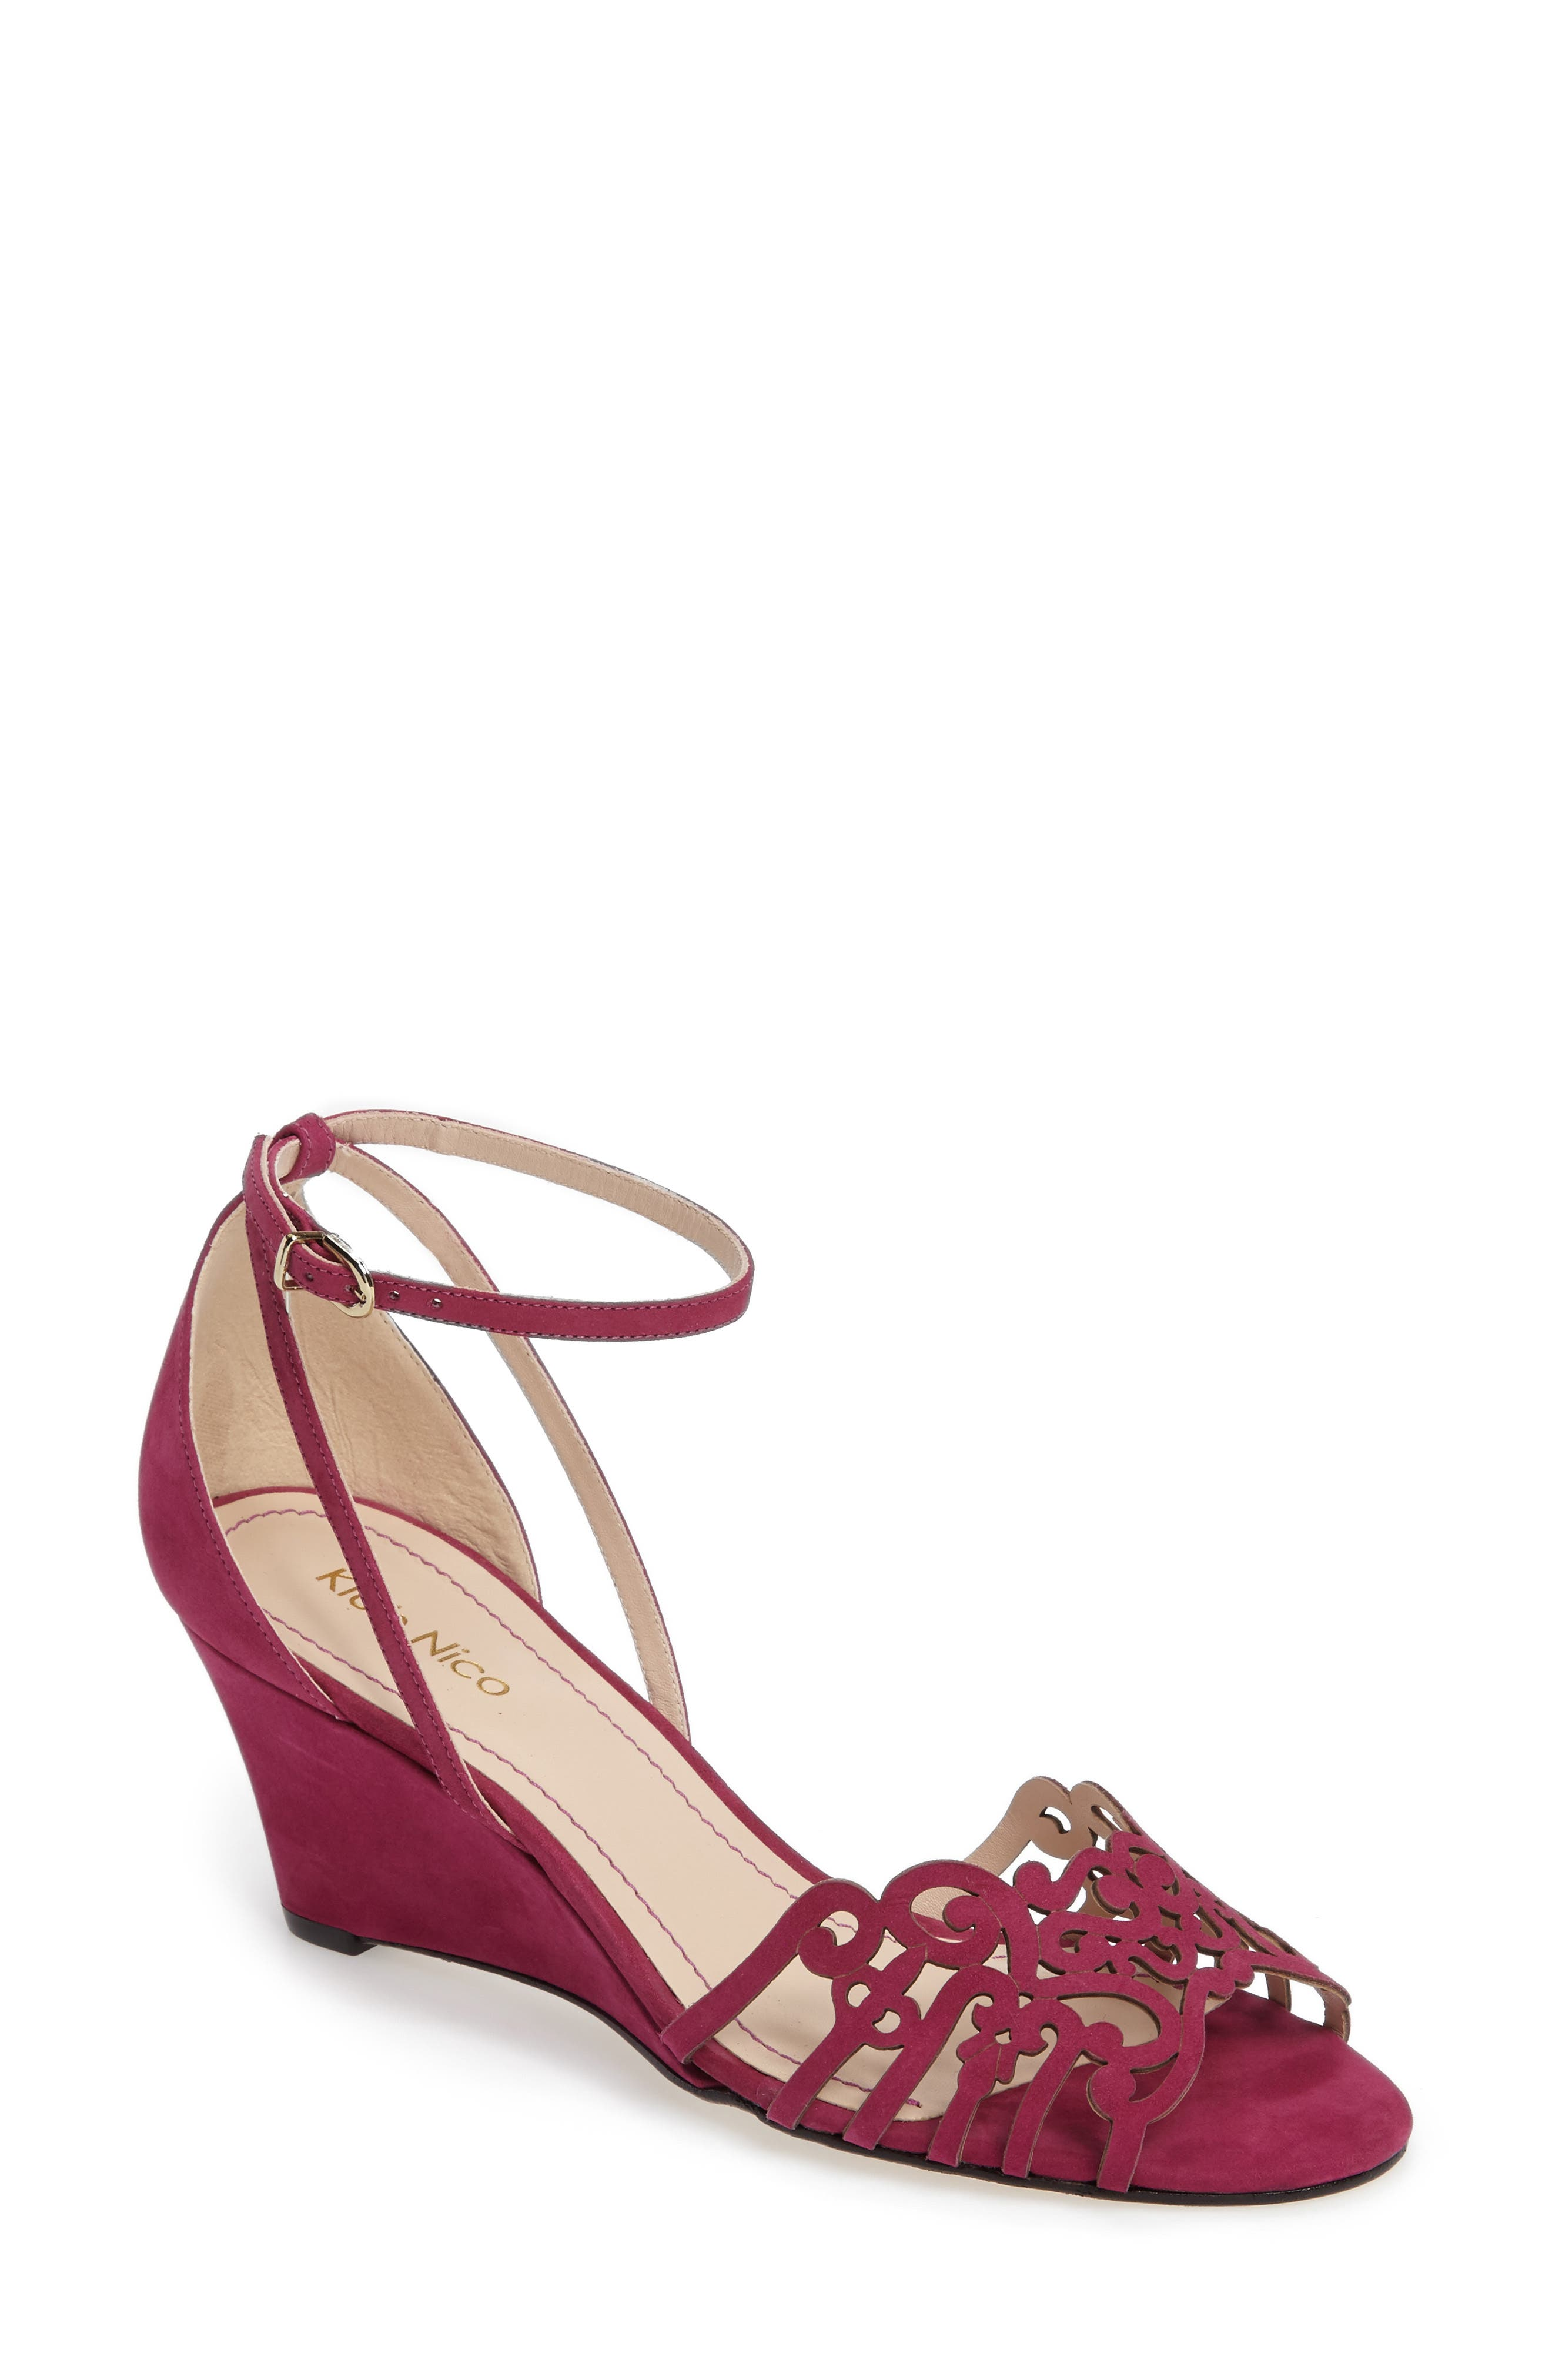 'Kingston' Ankle Strap Wedge Sandal,                             Main thumbnail 1, color,                             MAGENTA LEATHER